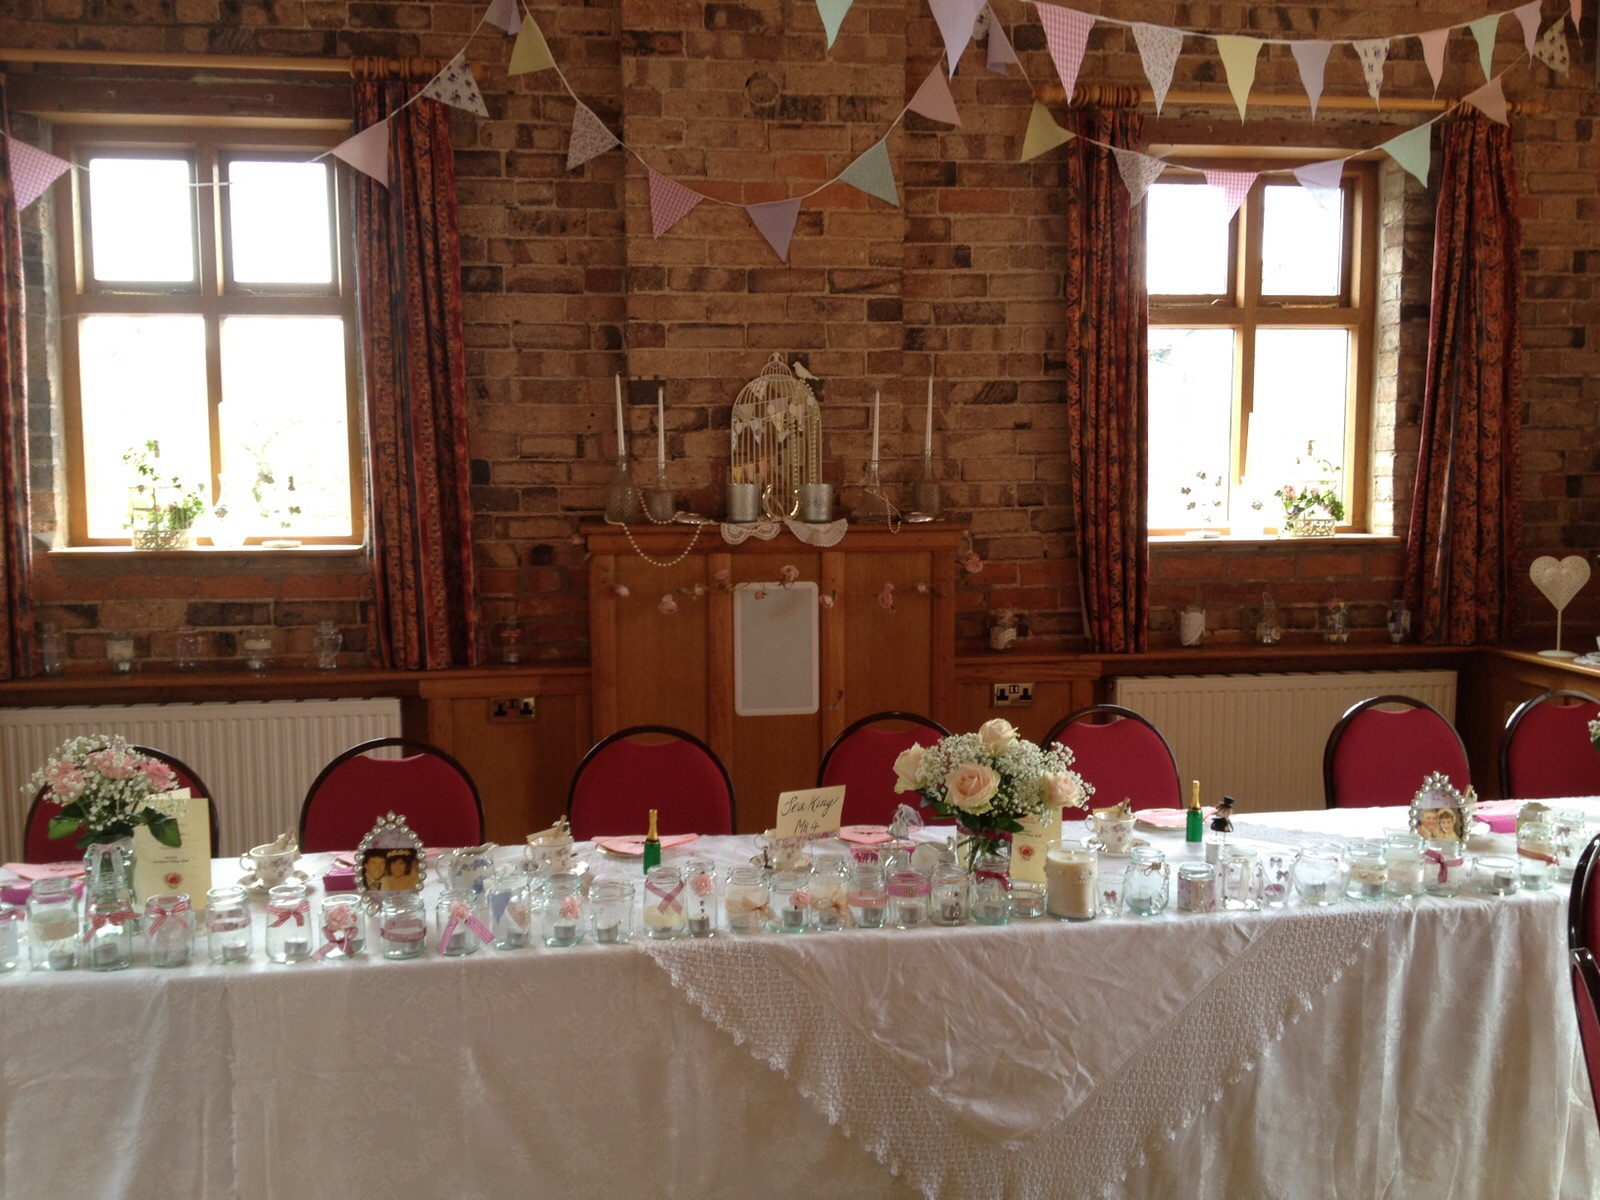 Stress Free : Decorating your event £100 per day or Decoration & hire of all my items £500 (3 day hire) s